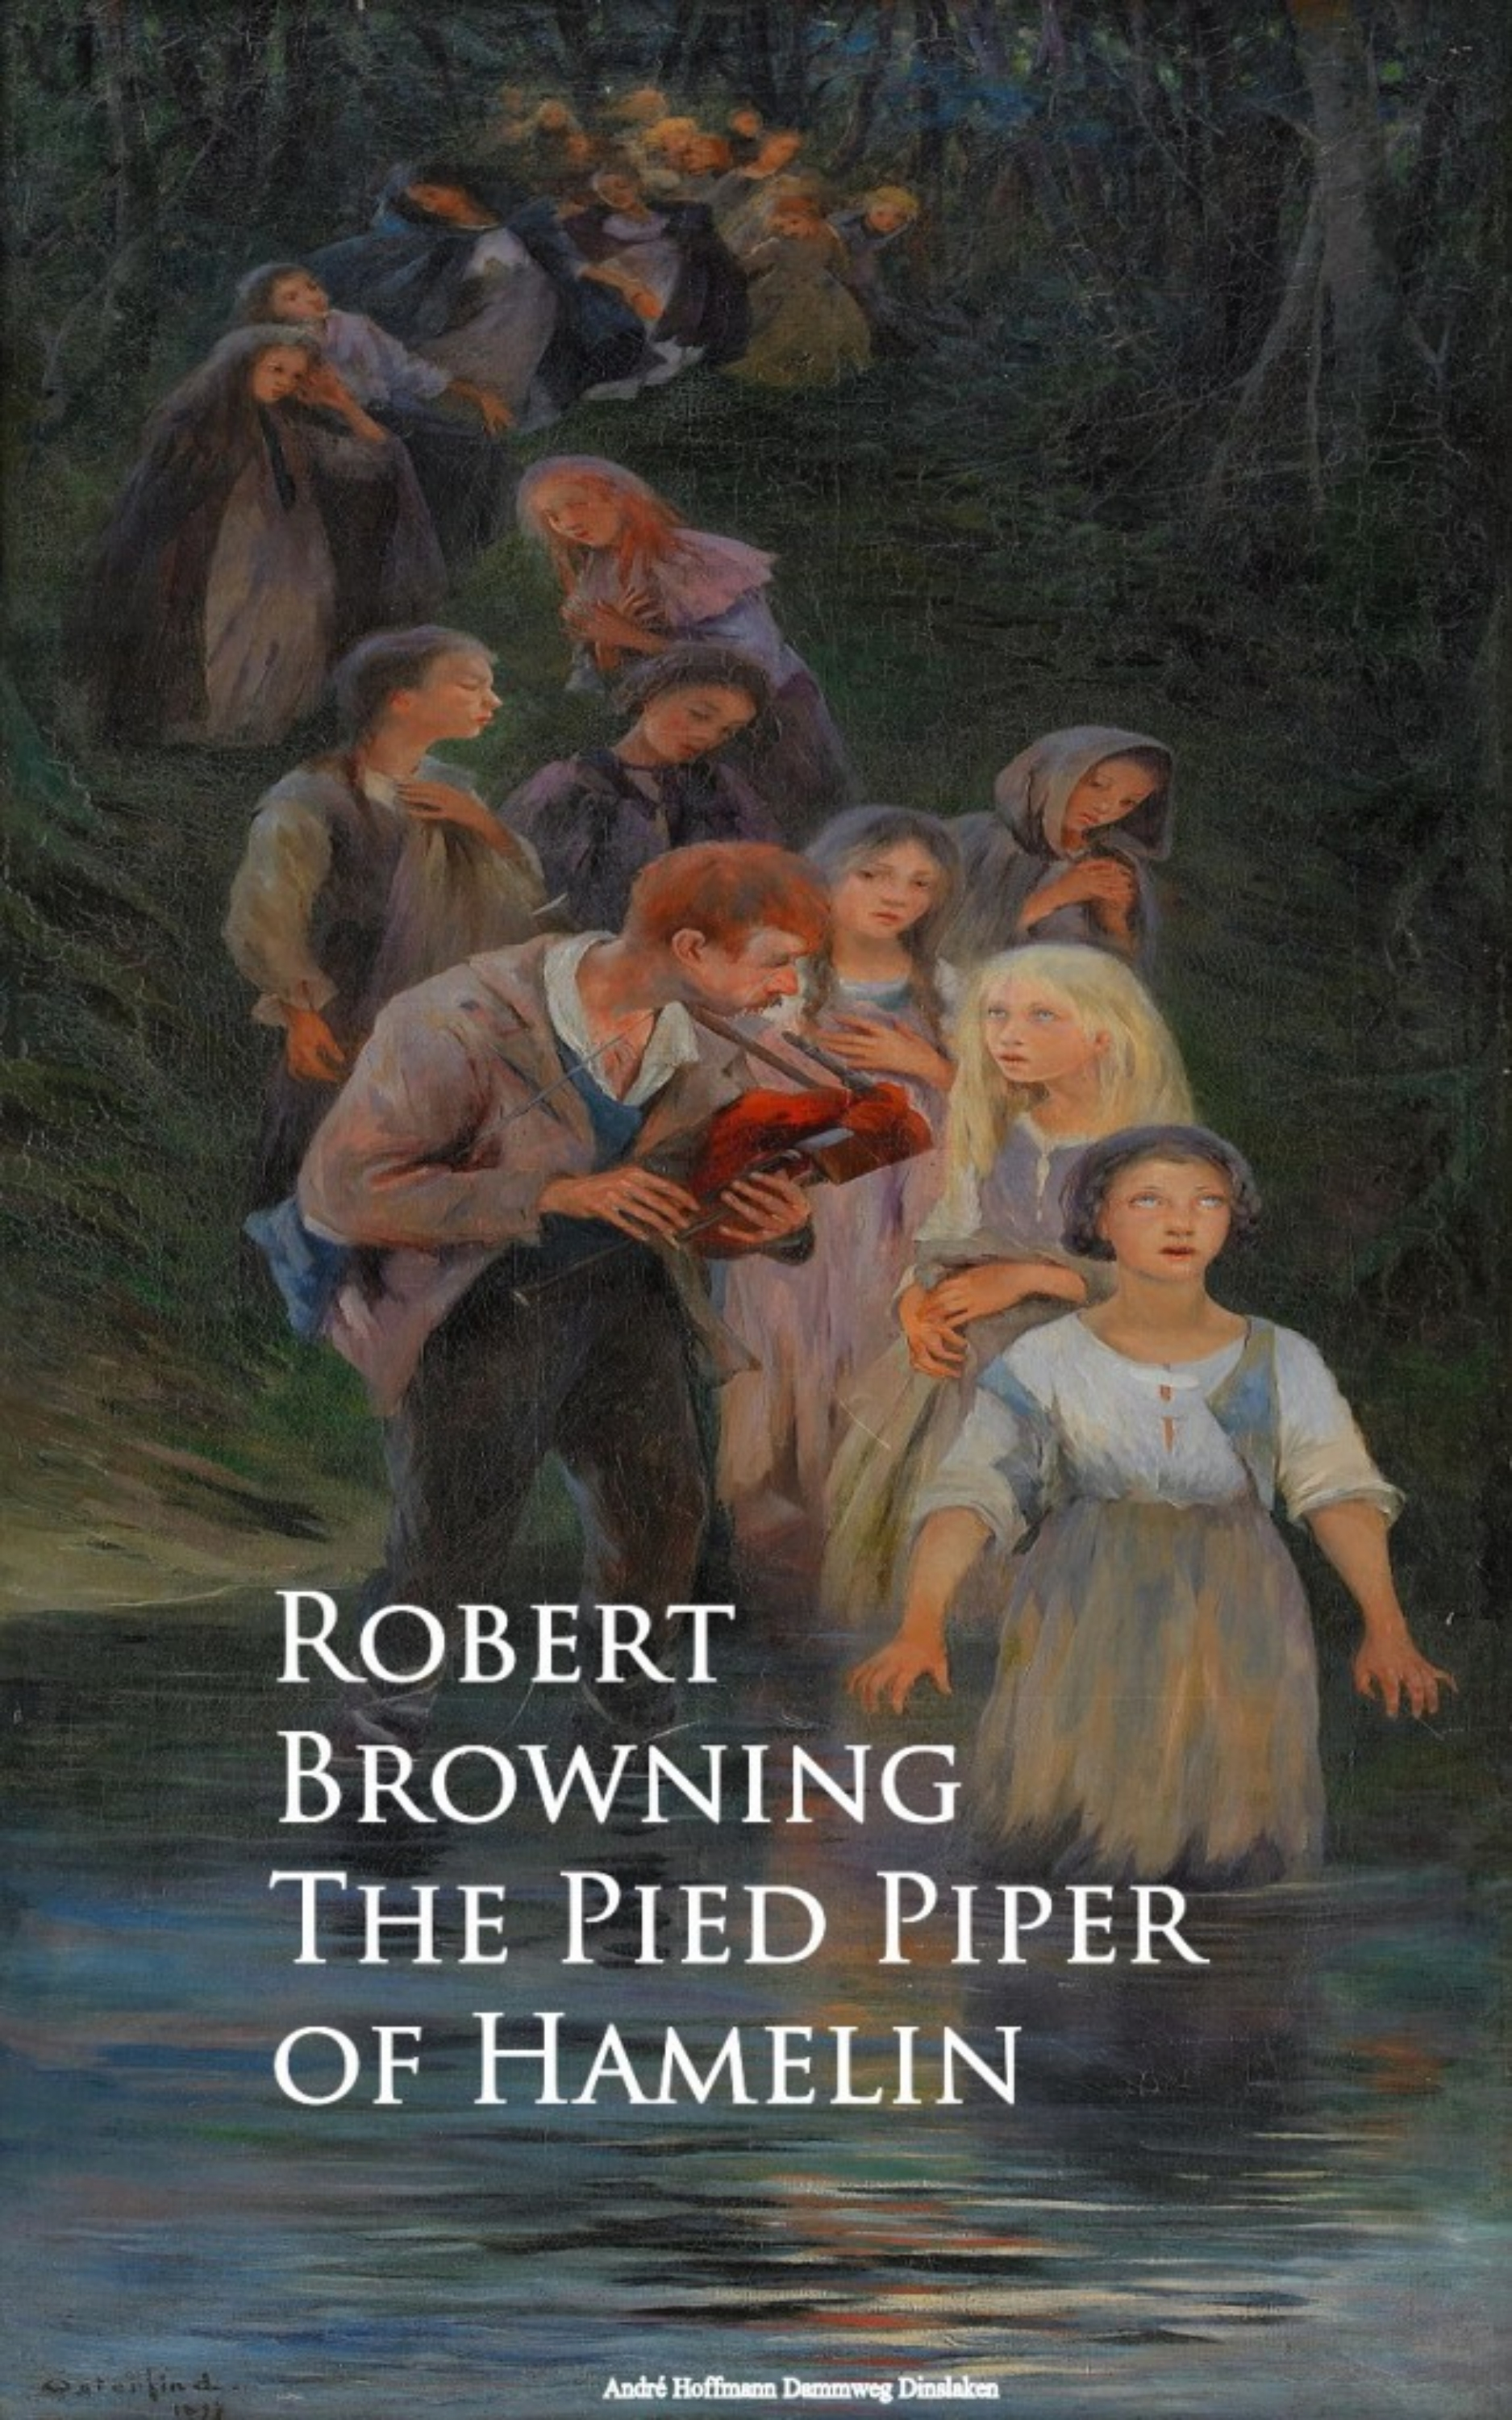 Robert Browning The Pied Piper of Hamelin